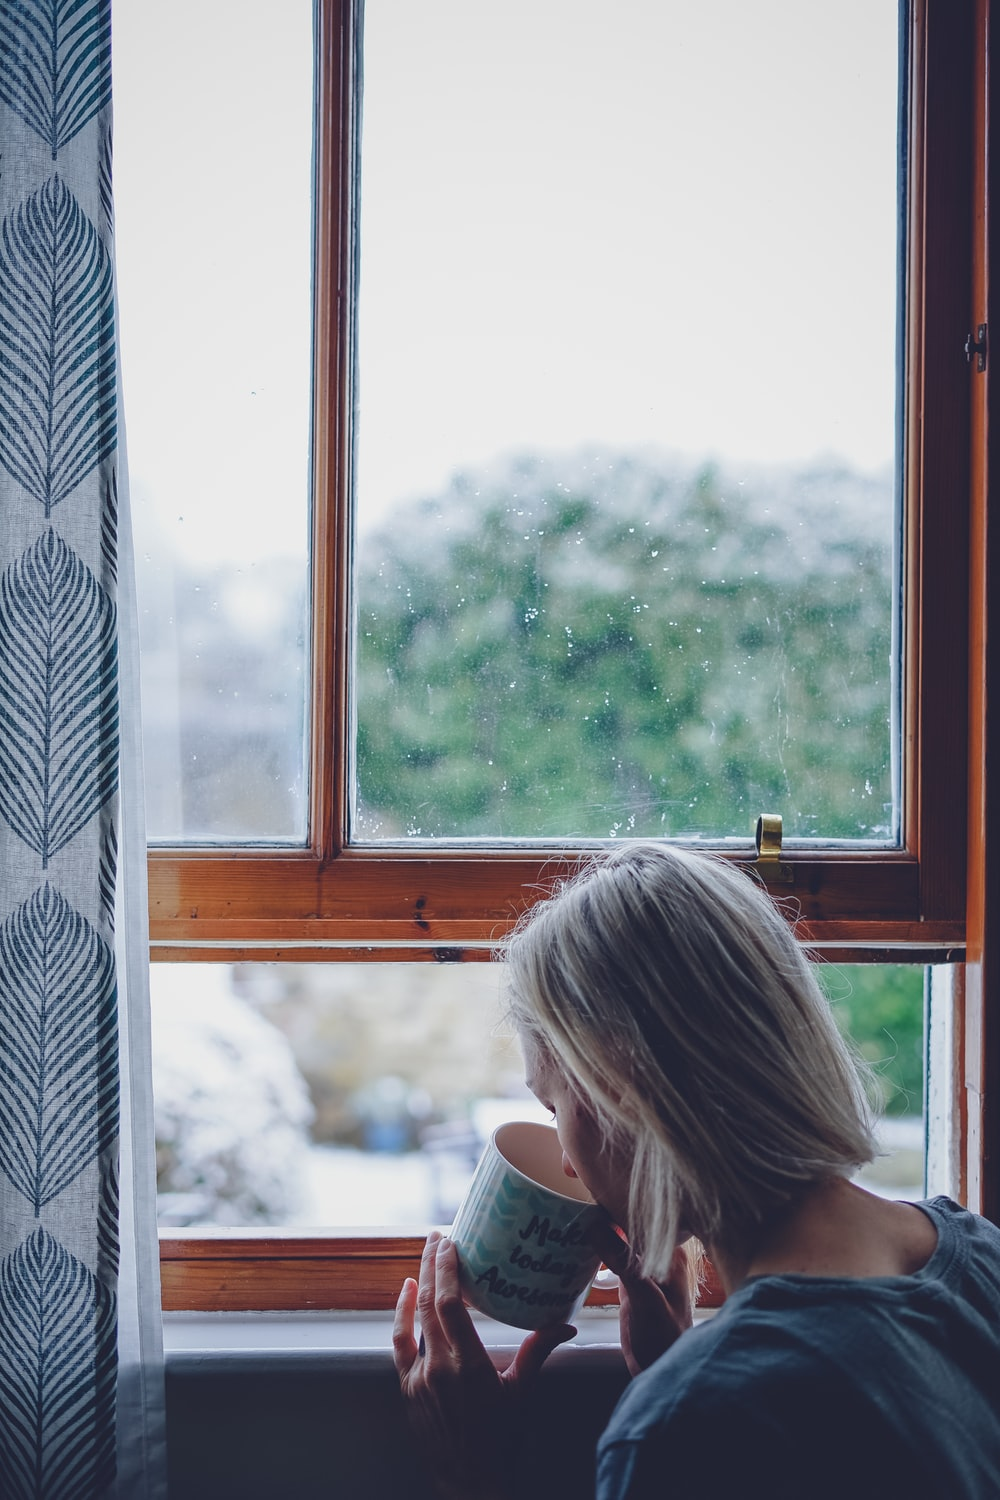 woman drinking in front of window at daytime